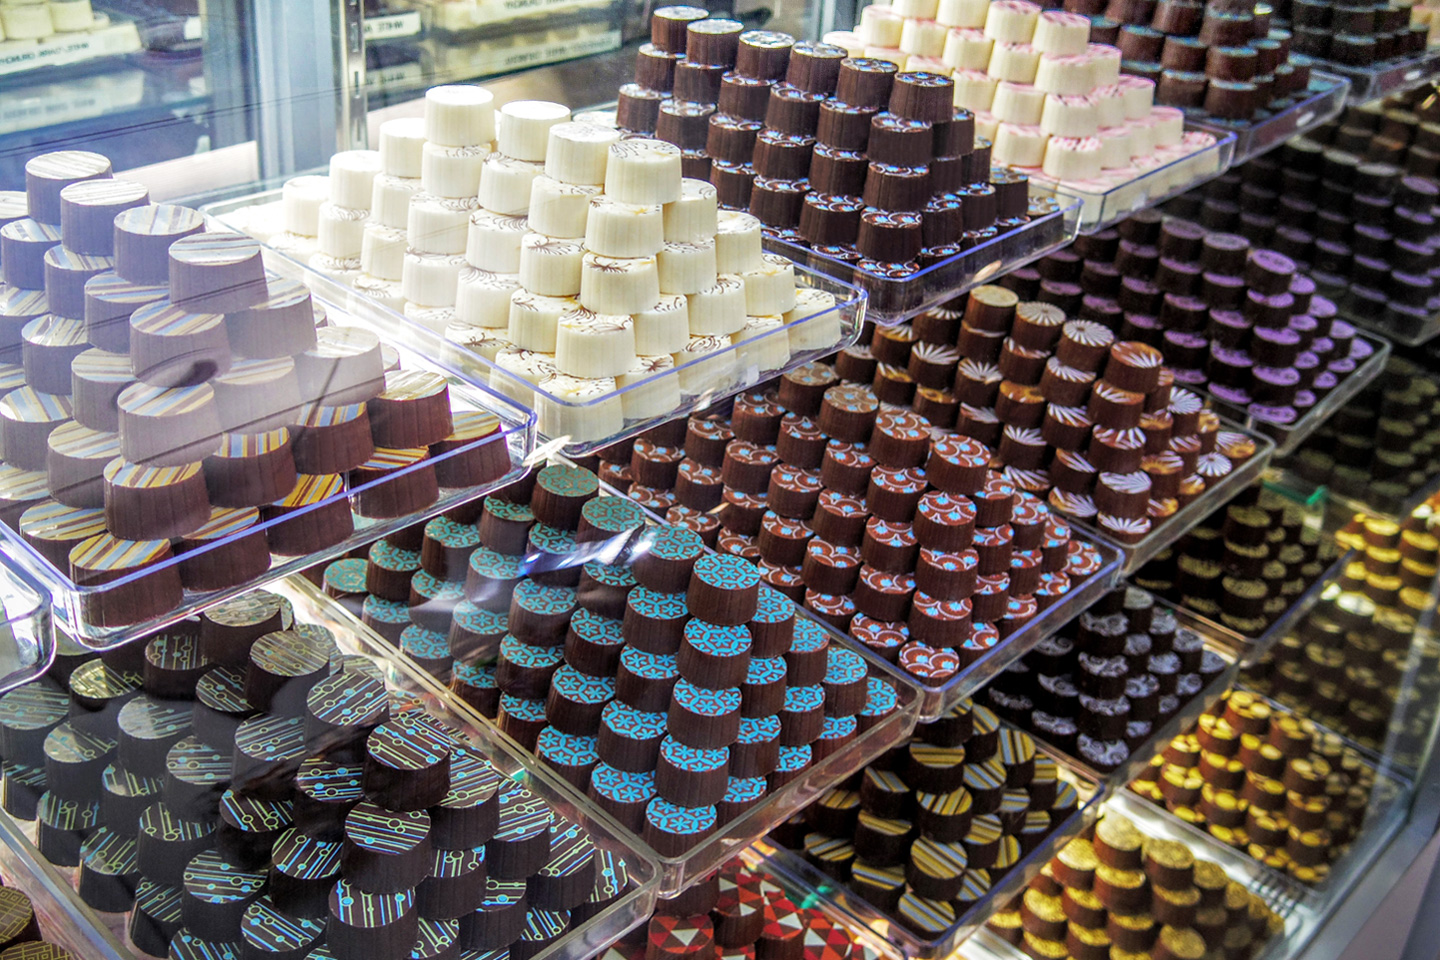 Chocolate works montclair new jersey 973 744 3344 store slide negle Image collections